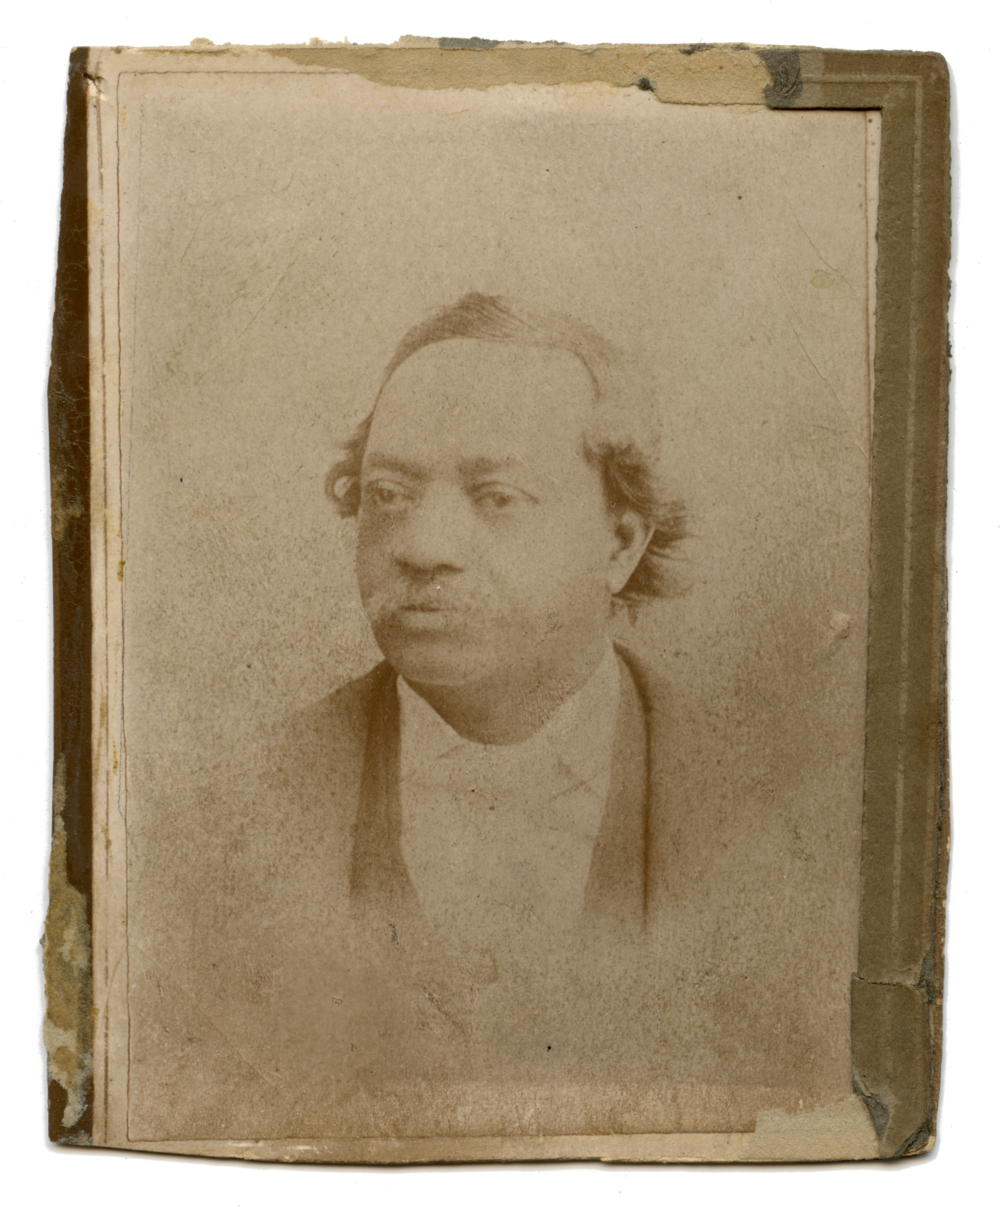 Author Maureen Egan discovered this long-hidden image, the only known photographic portrait of John Dabney, in 2015 at The Valentine, the preeminent museum of the history of Richmond, Virginia.  (  Displayed here courtesy of The Valentine.)